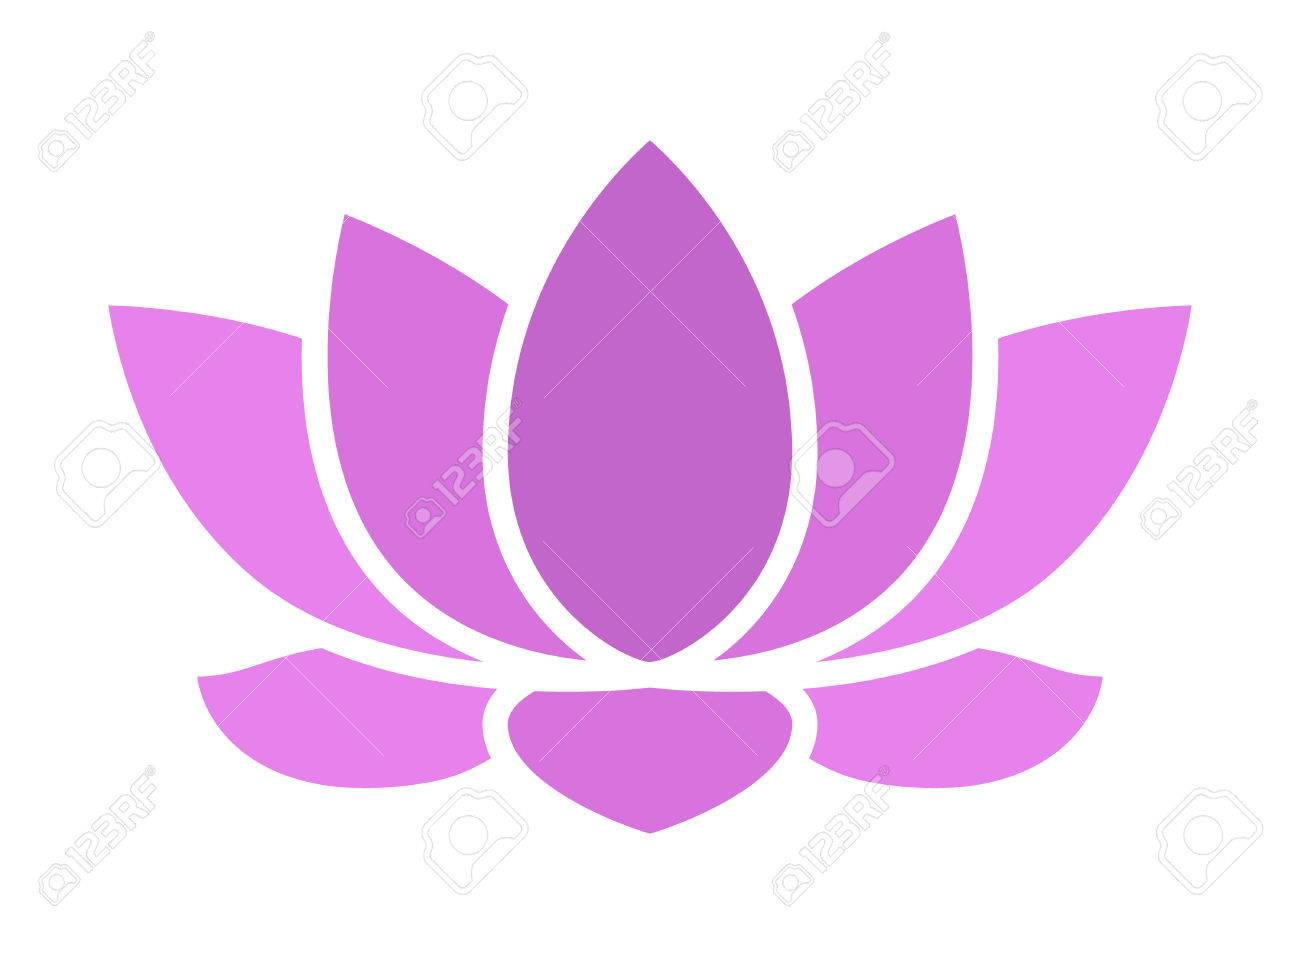 Incredible free clipart purple lotus flower intended for your purple lotus flower blossom flat icon for apps and websites intended for incredible free clipart purple lotus flower intended for your reference mightylinksfo